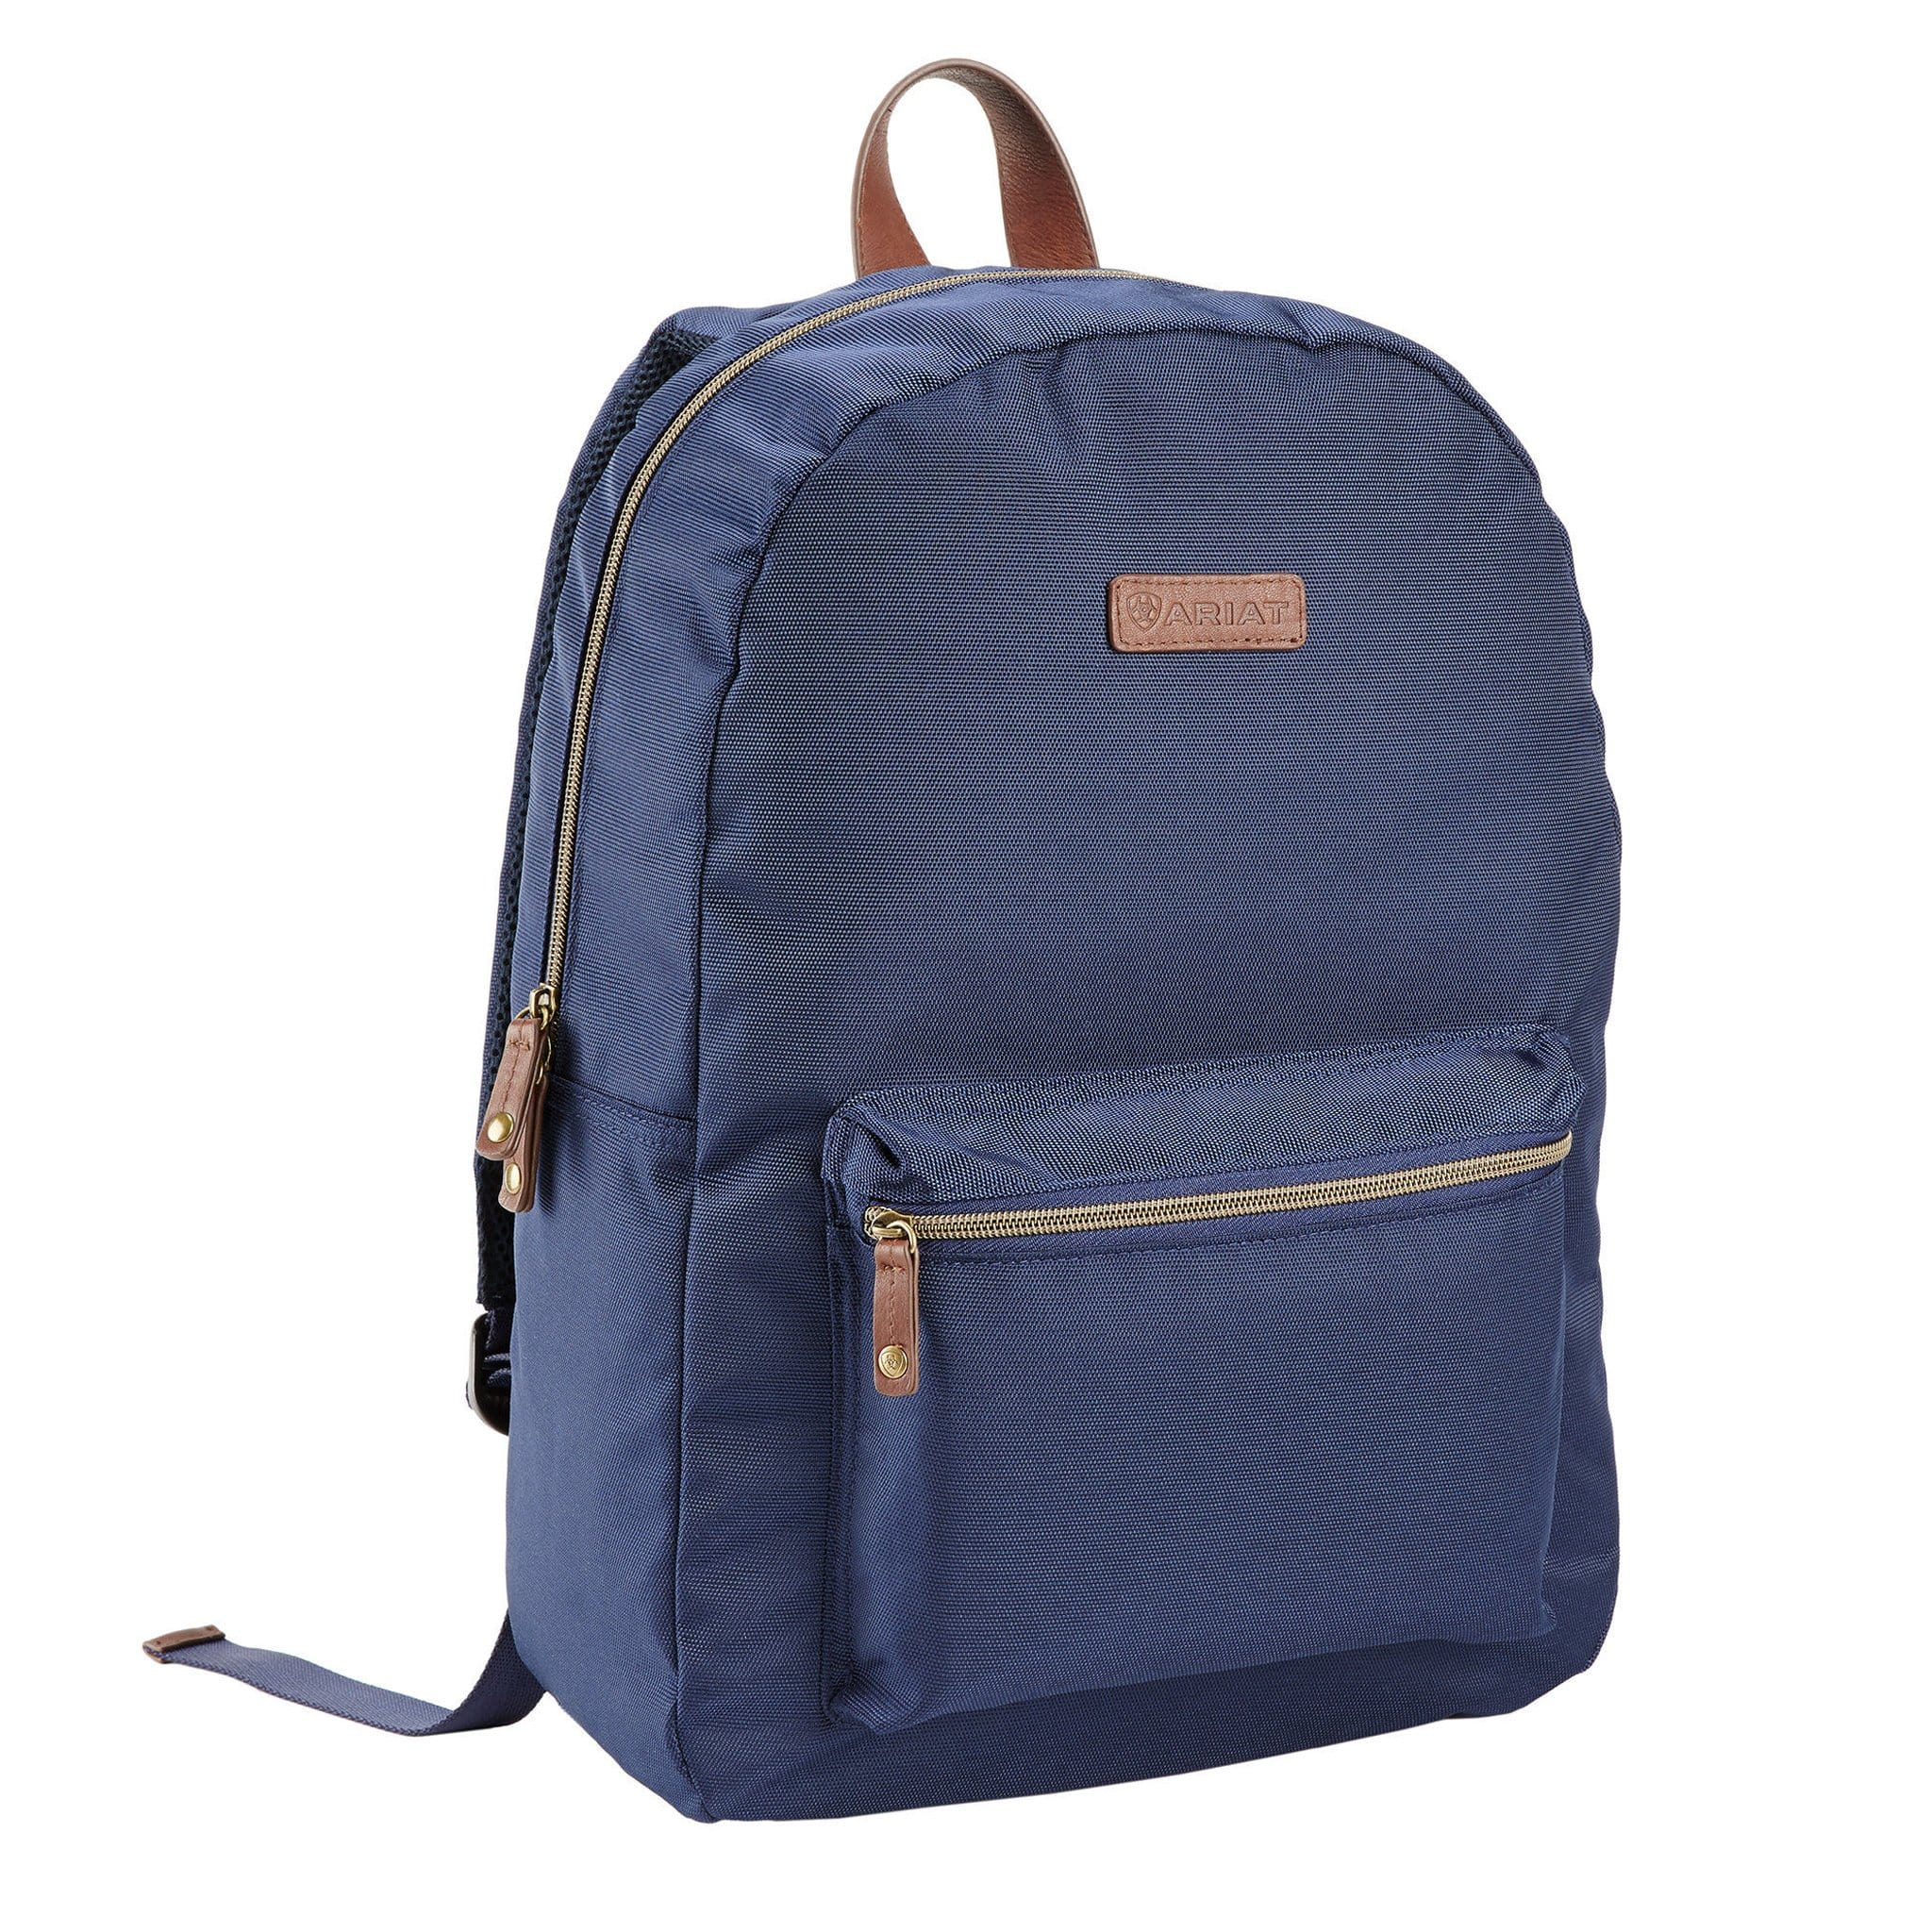 Ariat Core Backpack Navy 10017545